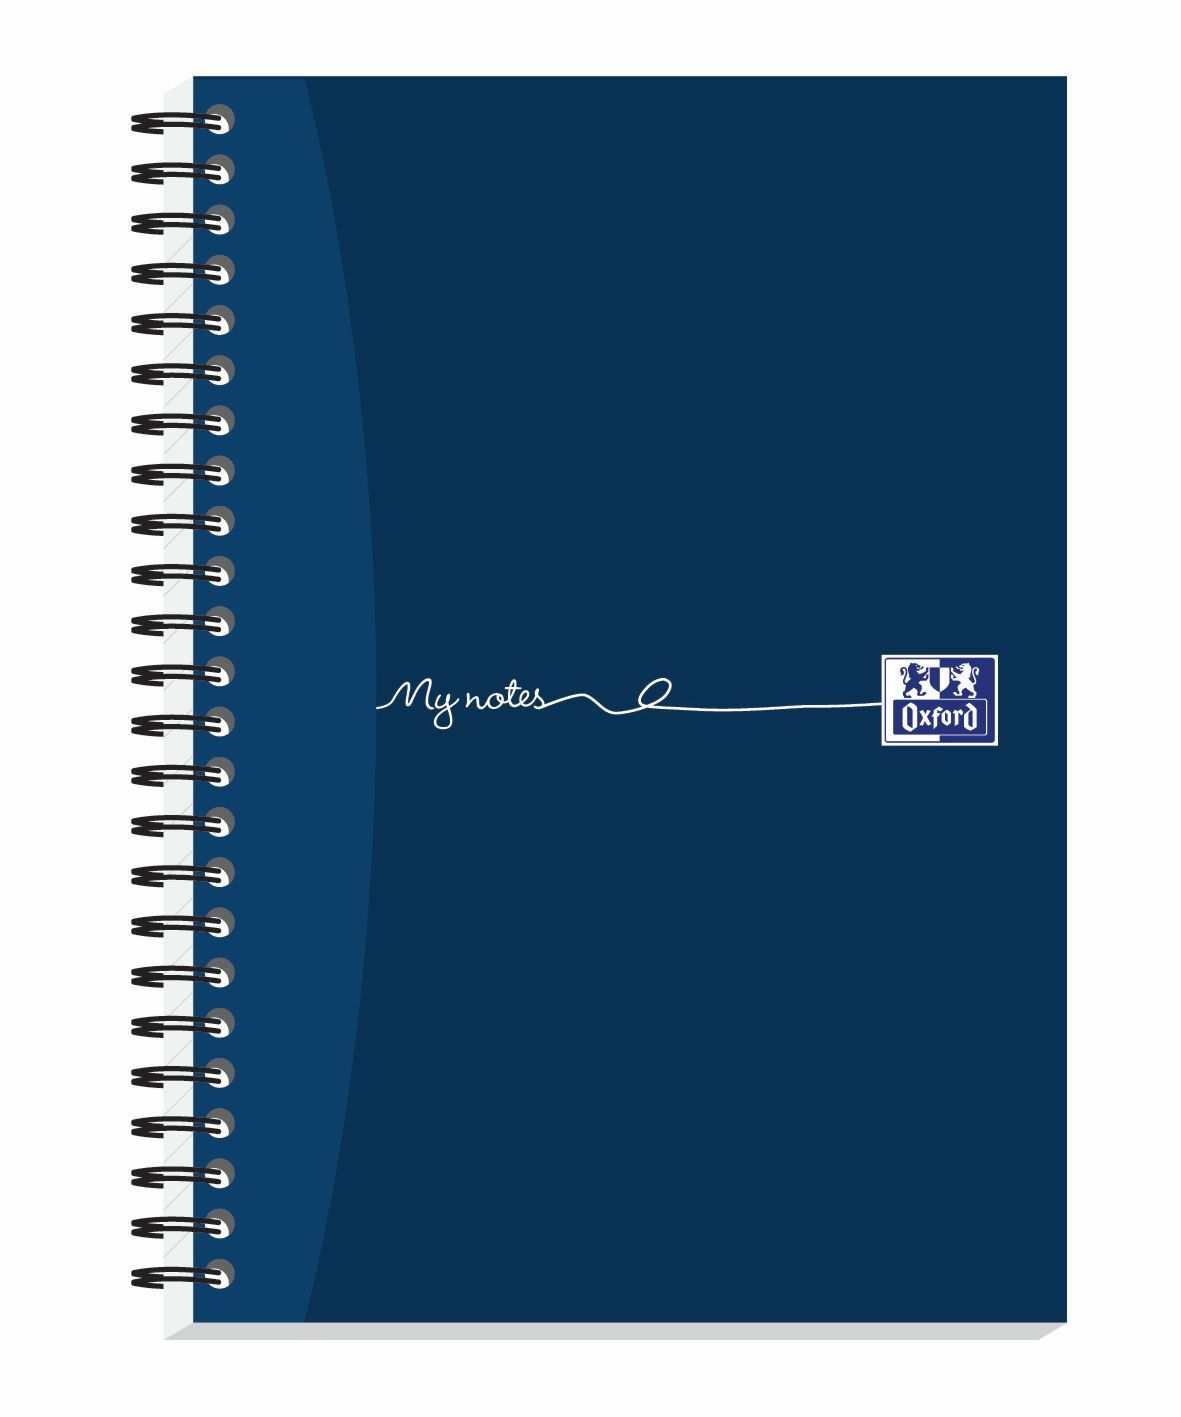 Oxford MyNotes Notebook Wirebound Feint & Margin 90gsm 200pp A5 Ref 100082372 [Pack 3]